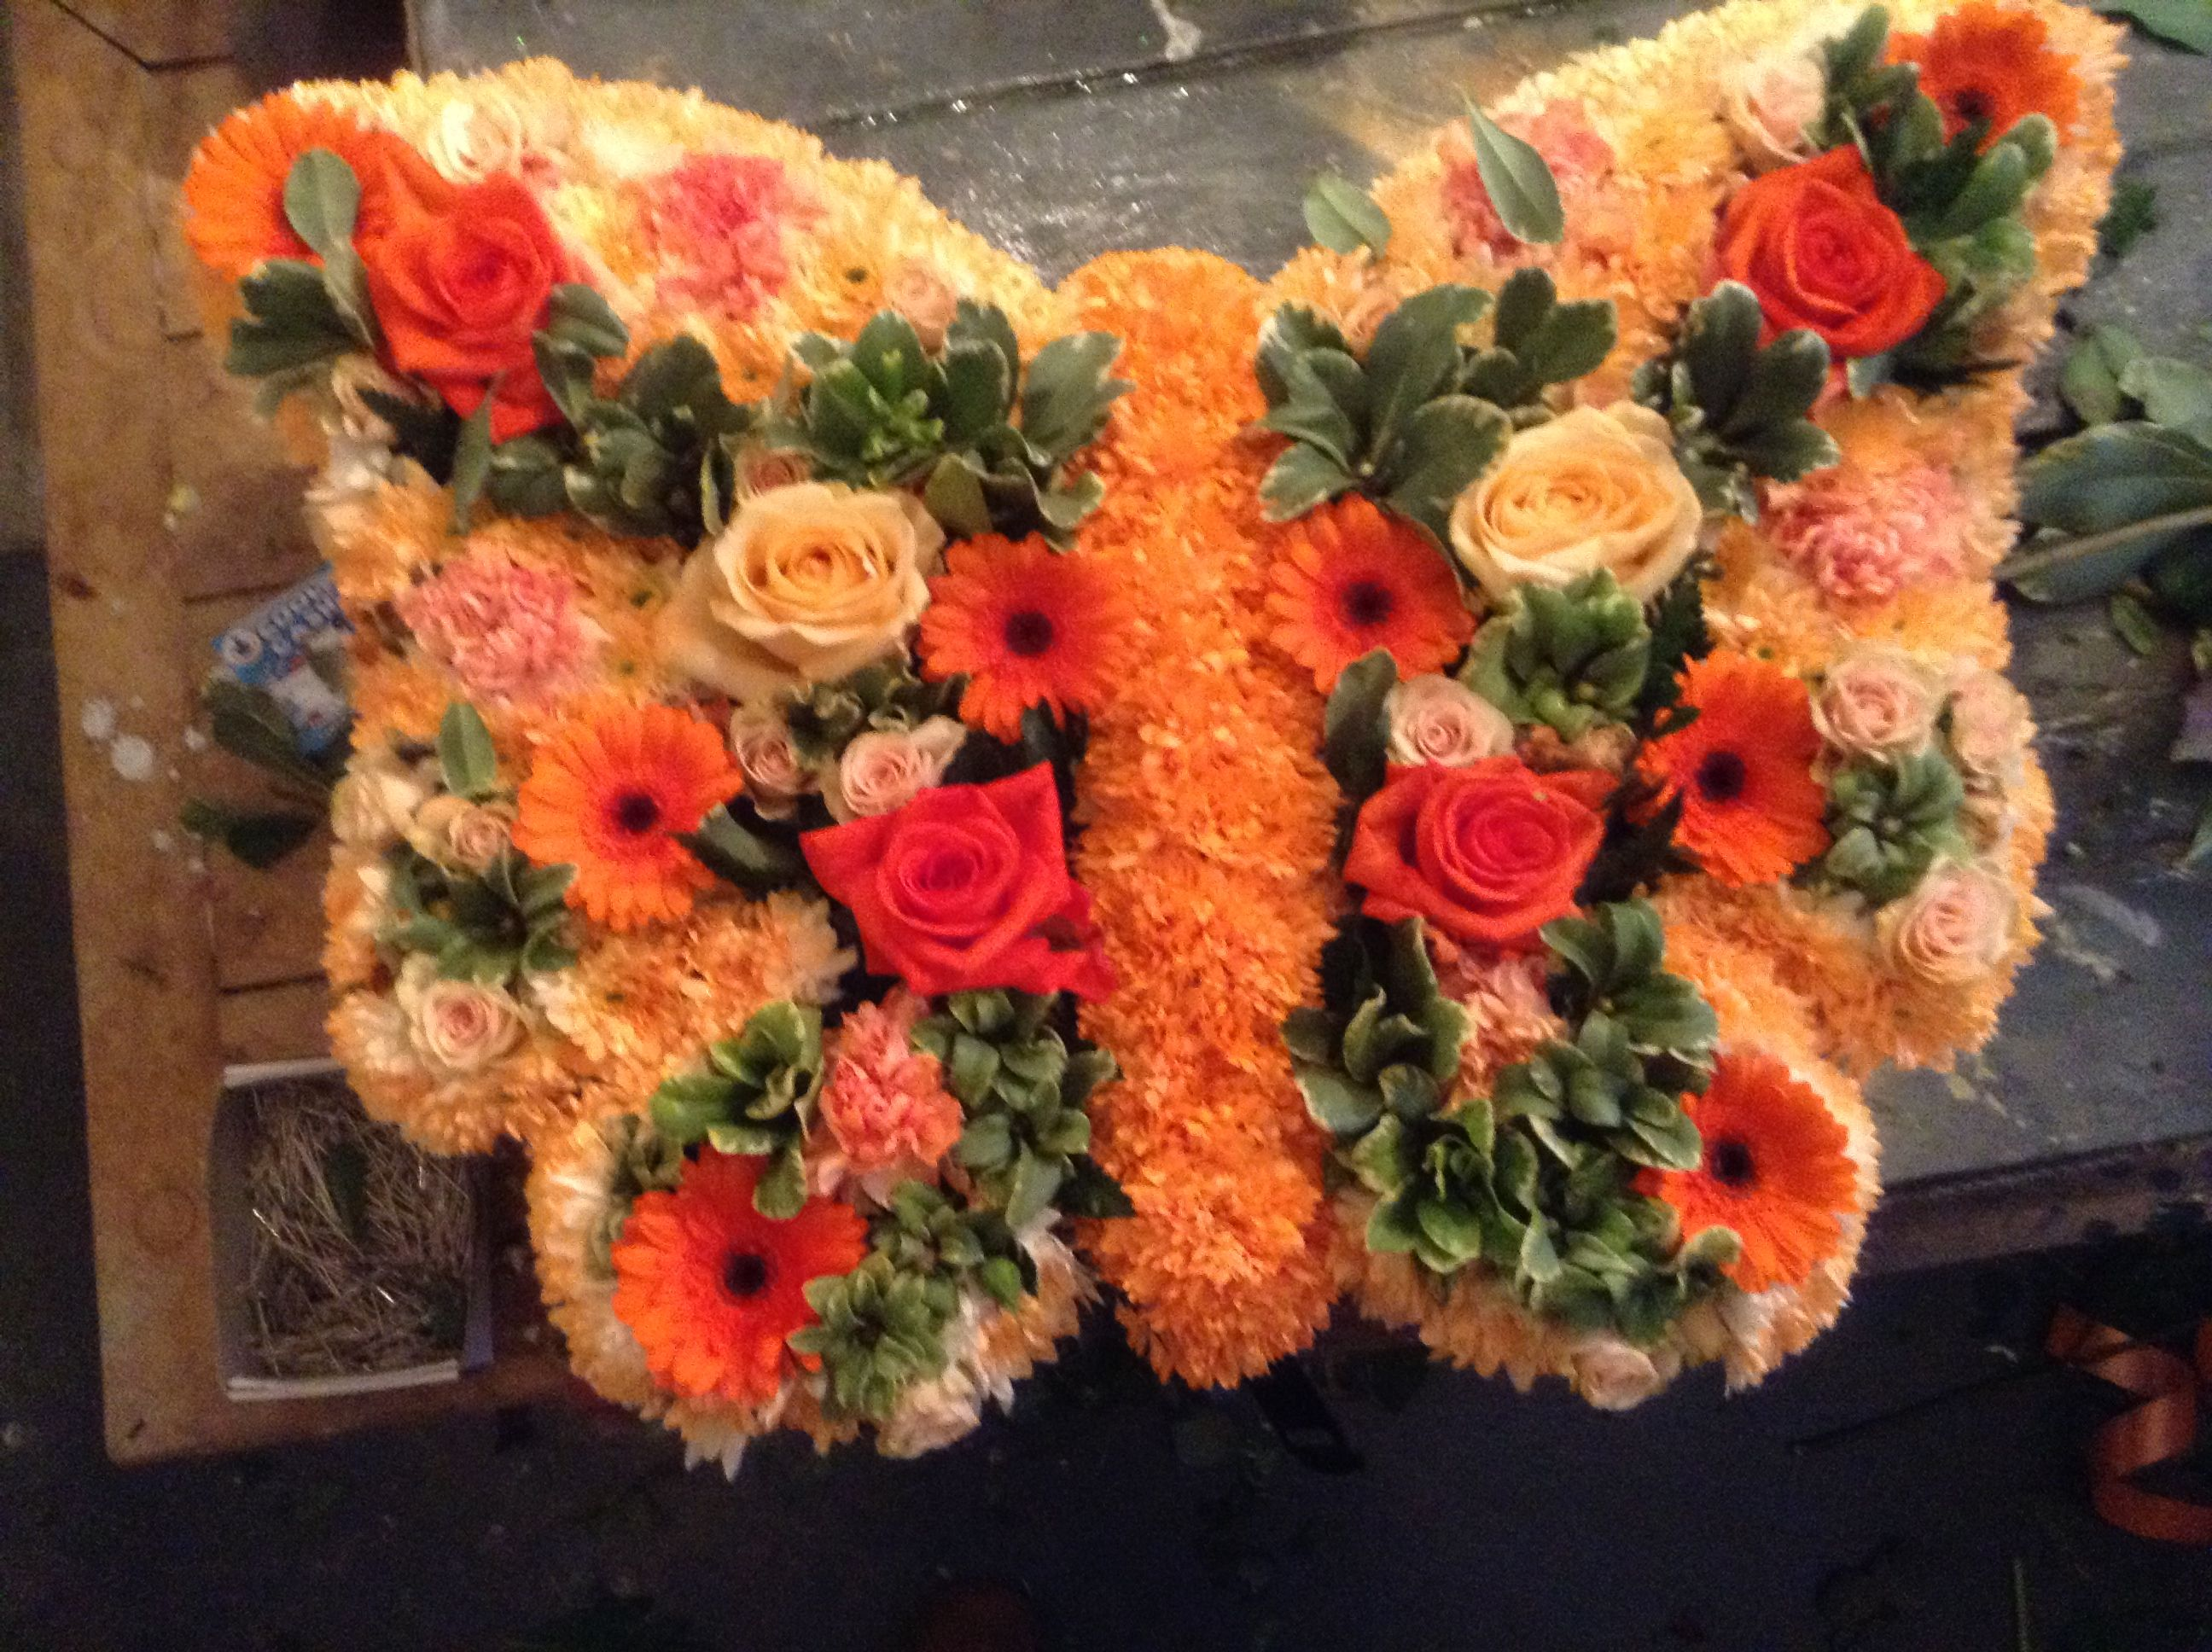 Funeral flowers orange butterfly funeral flower tribute bespoke funeral flowers orange butterfly funeral flower tribute bespoke funeral flowers unusual funeral flowers izmirmasajfo Image collections